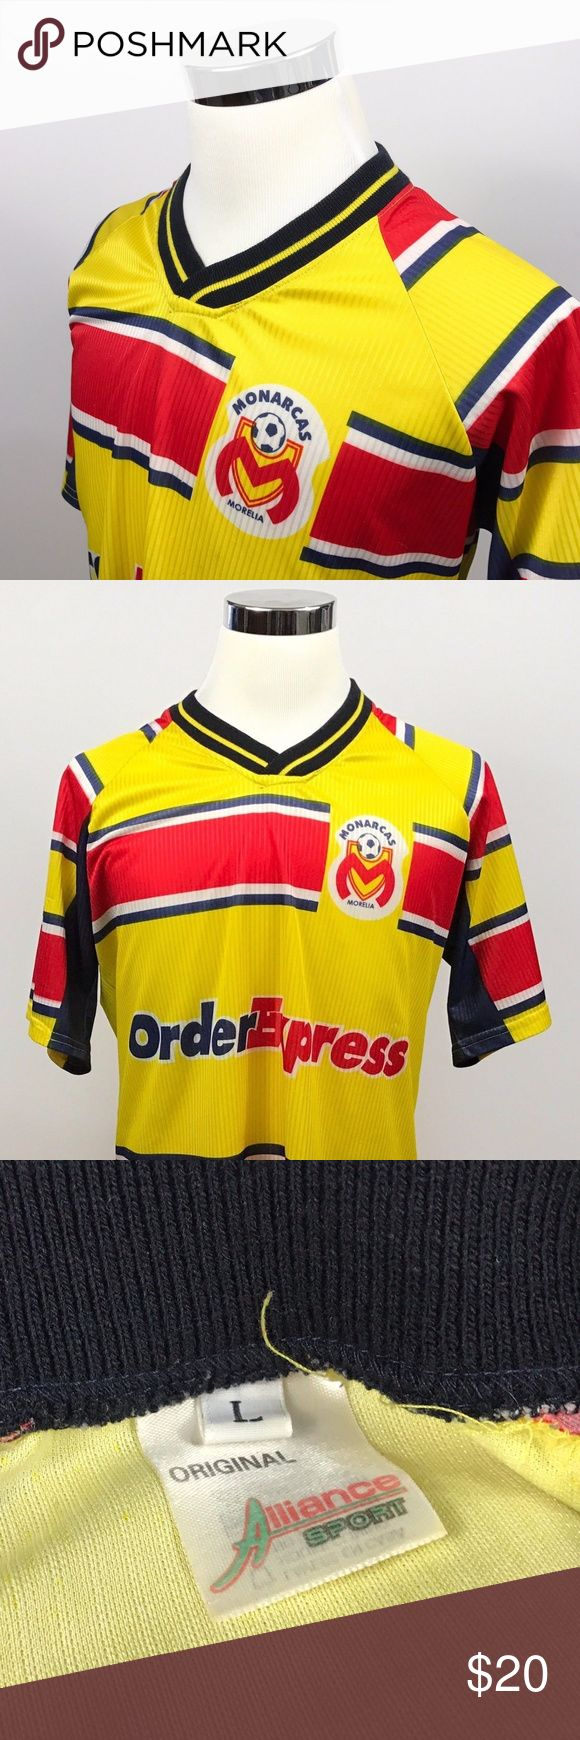 Monarcas Morelia Football Club Large Soccer Jersey Monarcas Morelia Football Club Mens Large Soccer Jersey Blue Gold Red Alliance   Measurements (inches): Pit to Pit (across the chest): 24 Sleeve (shoulder seam to cuff): 9  Length (top of collar to hem): 30  Condition:  This item is in good pre-owned condition! Free from rips & stains.  All items come from a smoke/ pet free environment. Morelia Shirts Tees - Short Sleeve